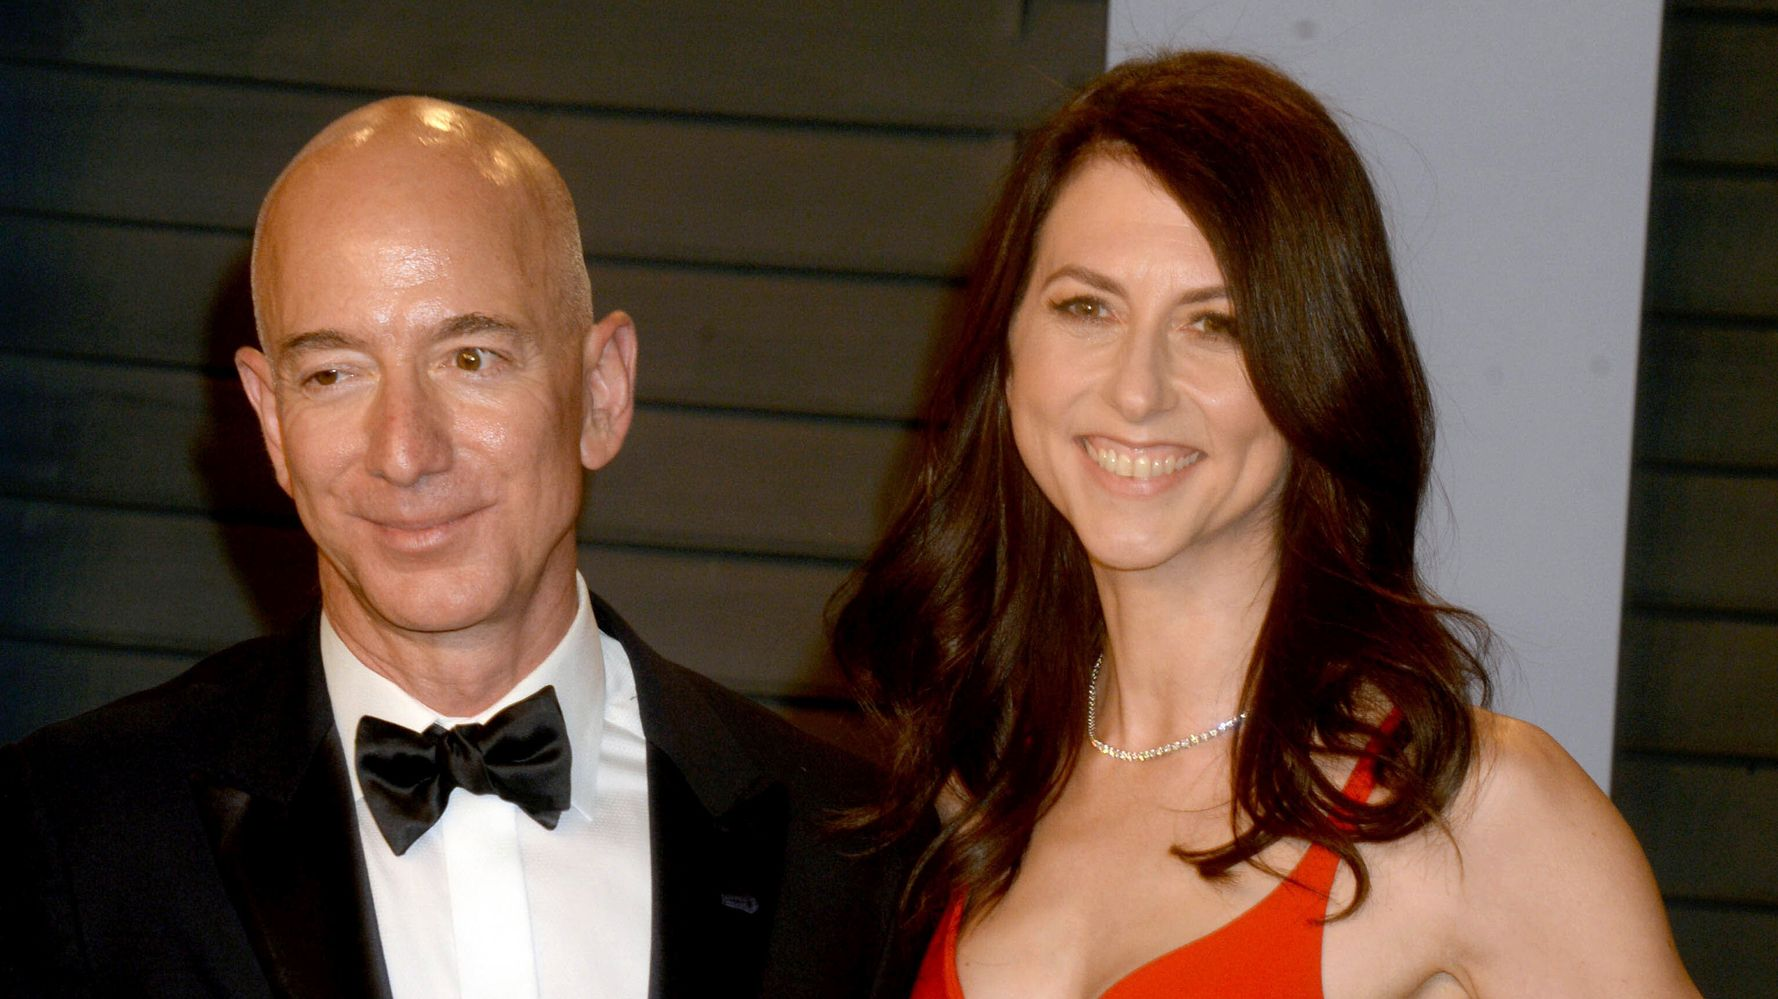 Jeff Bezos' Divorce Is Reportedly Final, Making His Ex Among The World's Richest Women